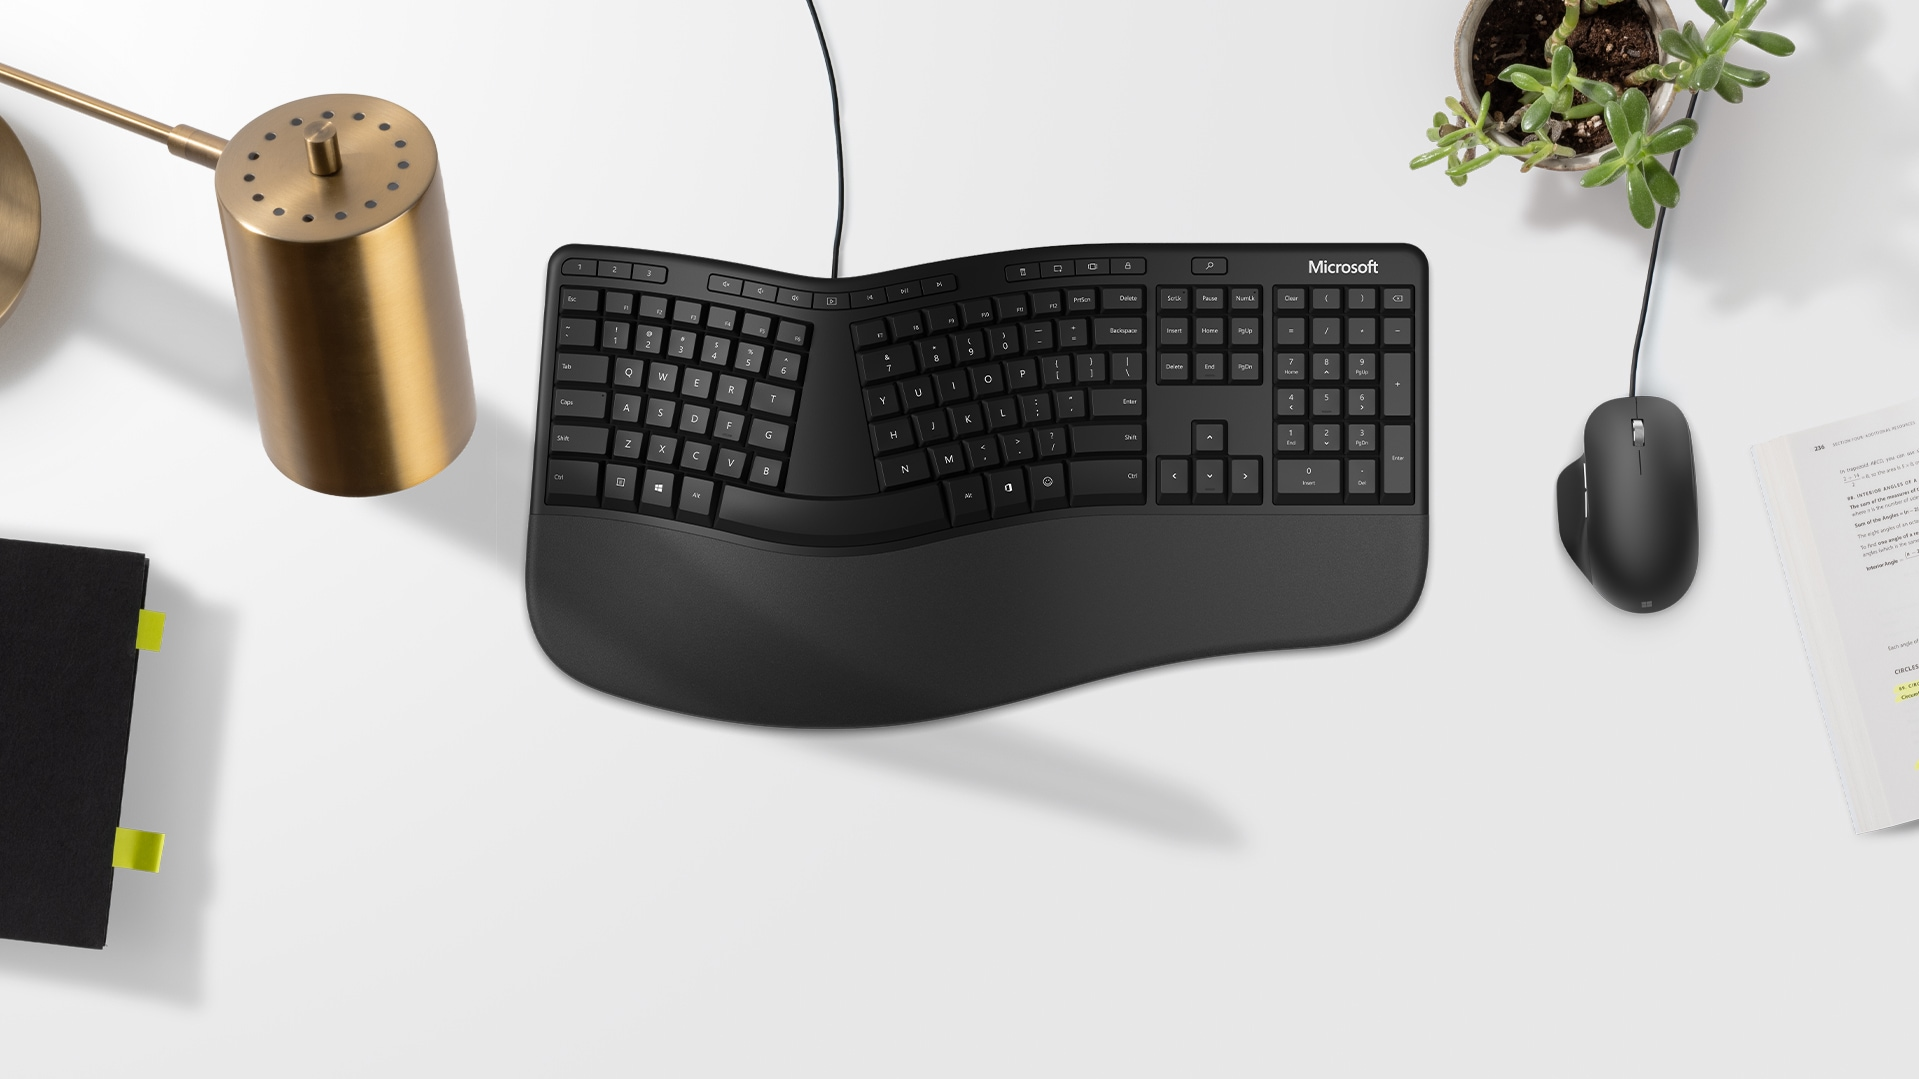 A Microsoft Ergonomic Keyboard and a Precision Mouse sit on a desk.